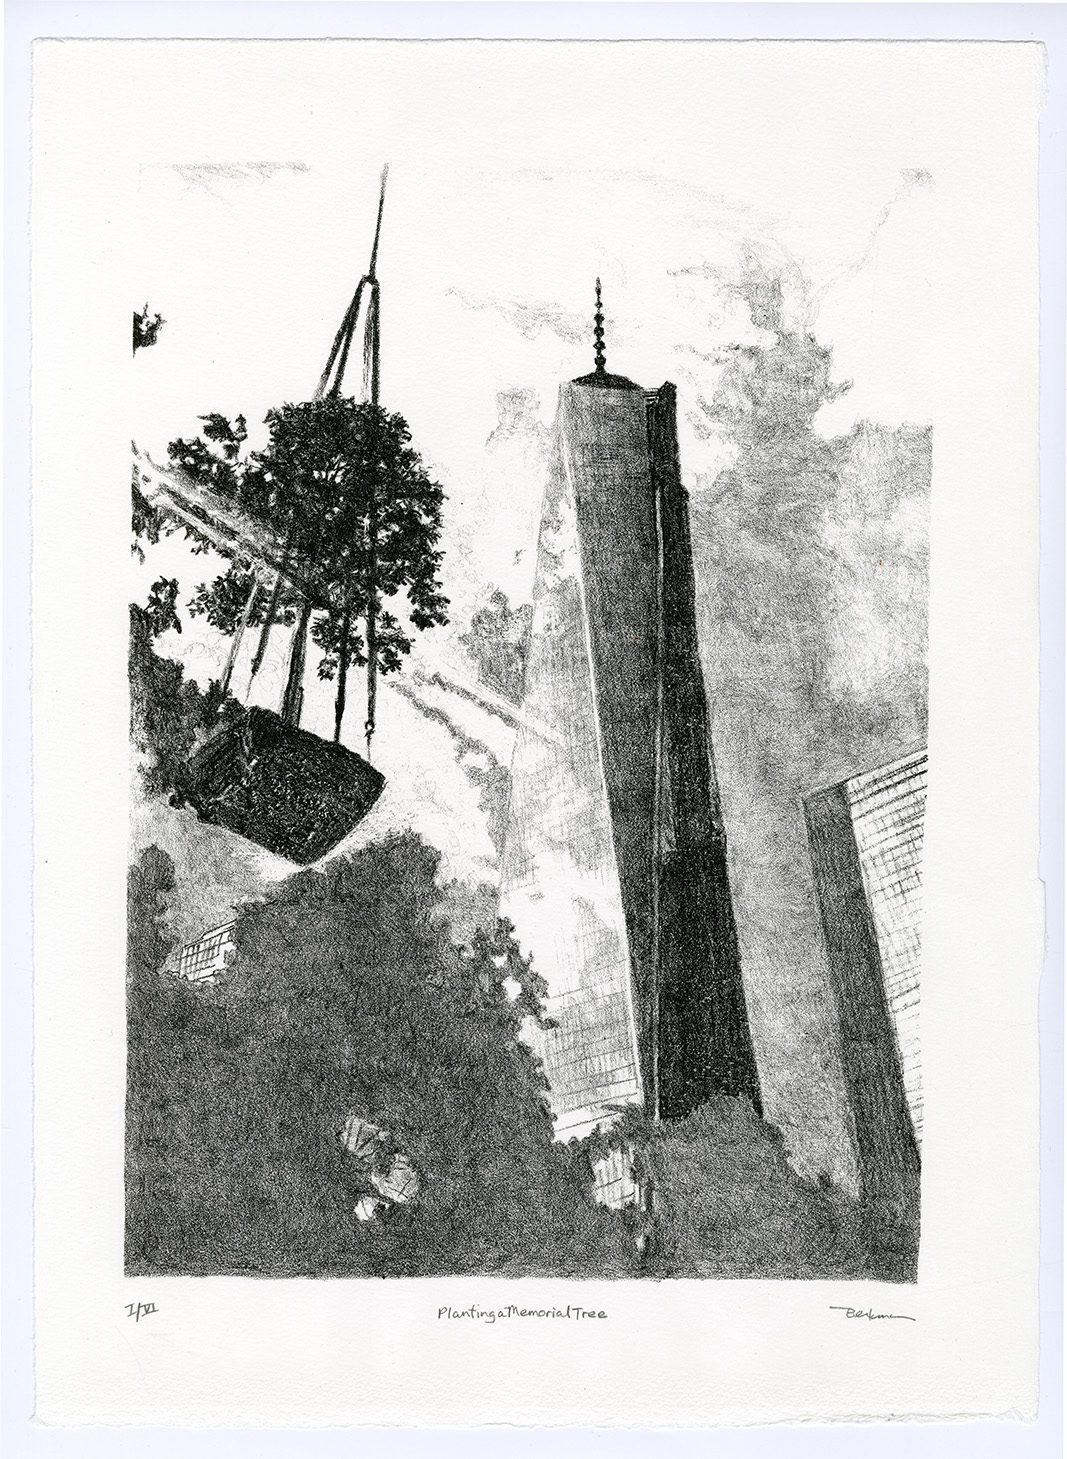 """""""Planting a Memorial Tree"""" by Brenda Berkman '73 depicts a Swamp White Oak tree being hoisted up in front of One World Trade Center as it is being constructed. It is one of over 400 trees to be planted at the 9/11 Memorial. Clouds reflect on the building's surface and trees in the foreground grow in the graveyard of St. Paul's Chapel."""